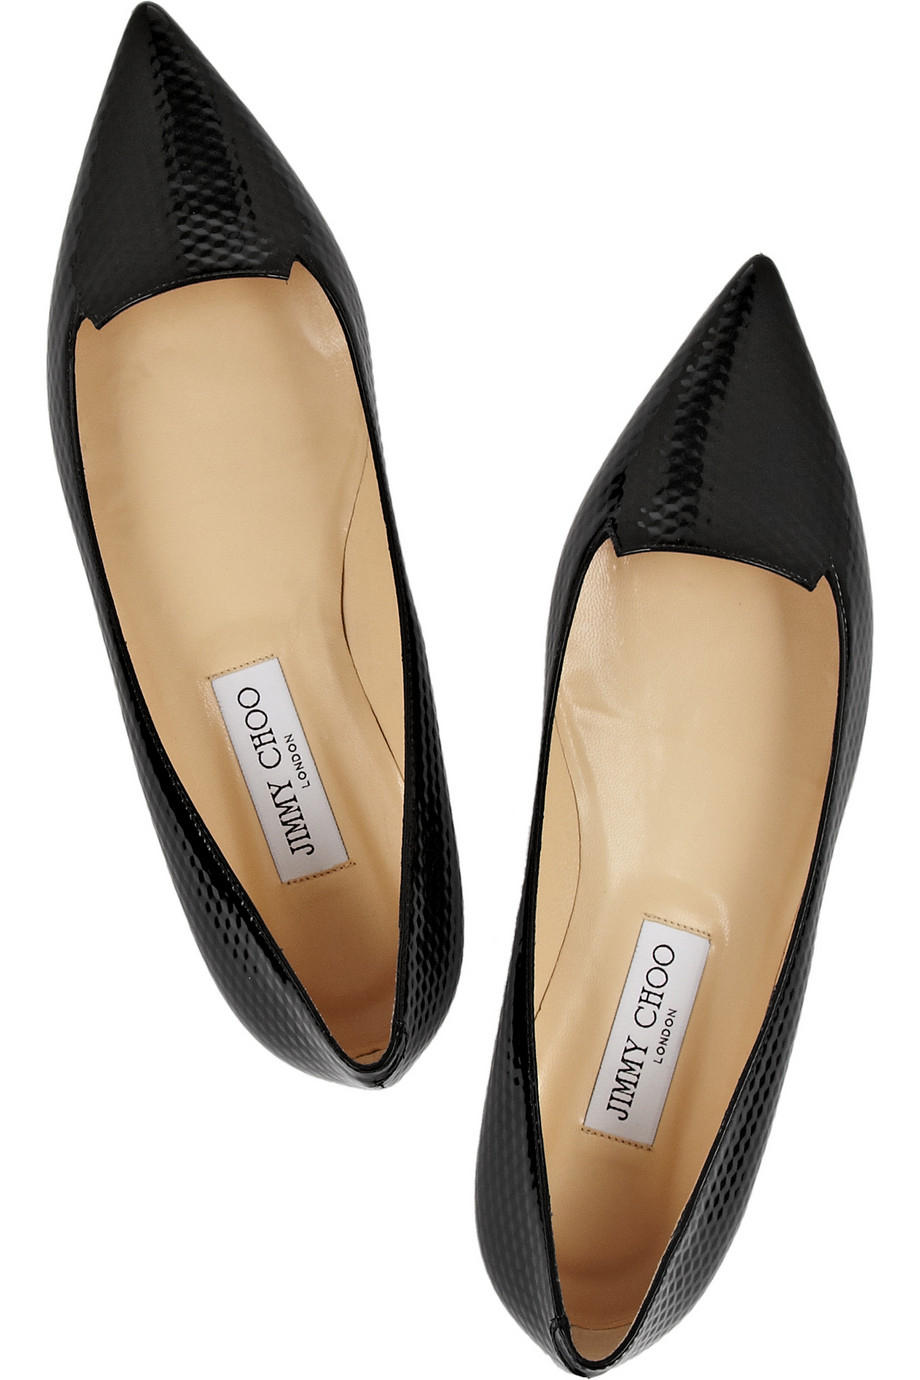 4eaa88dc72 Jimmy Choo Attila Embossed Patent-Leather Point-Toe Flats in Black ...